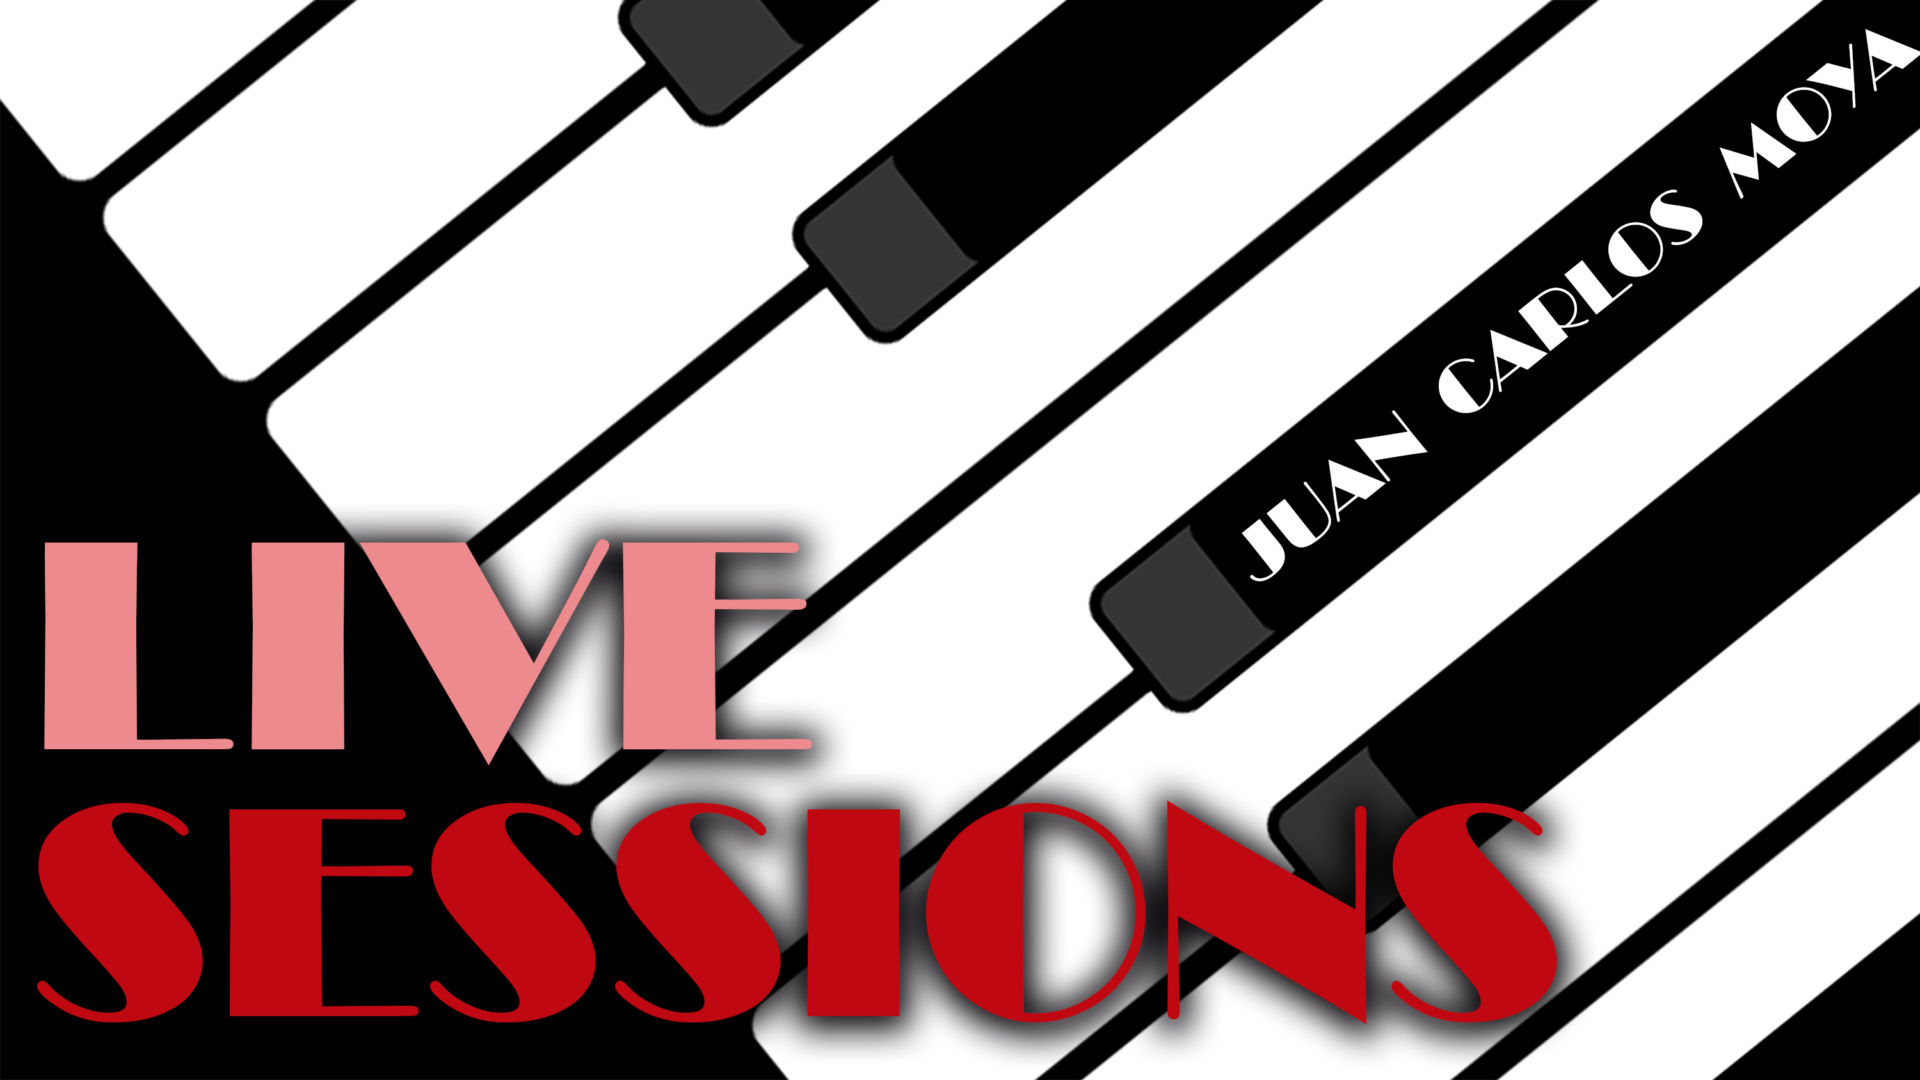 Live Sessions --> Covers and original music played live!